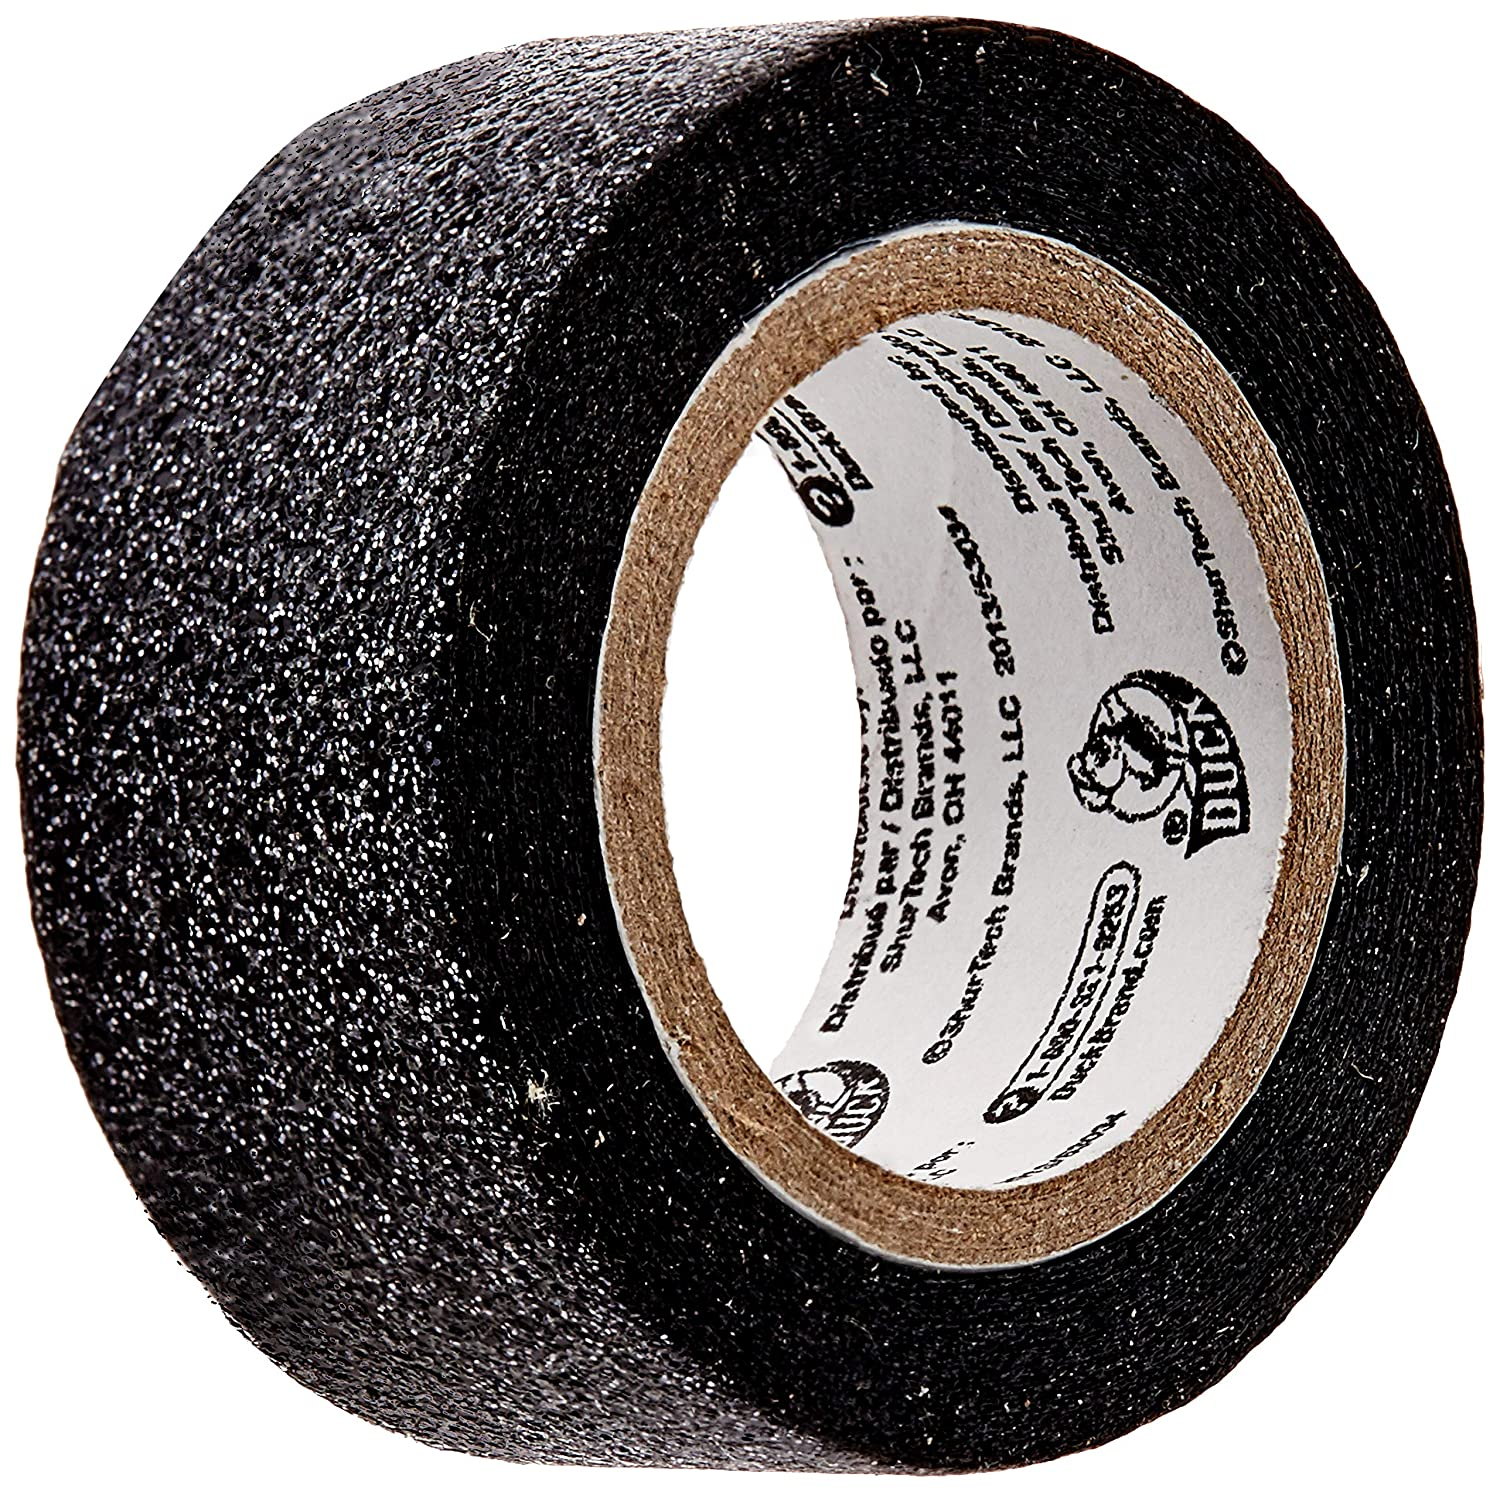 ShurTech 284651 glitter mini Duck tape,, 0.75 x 38,1 cm Notions Marketing 10007078